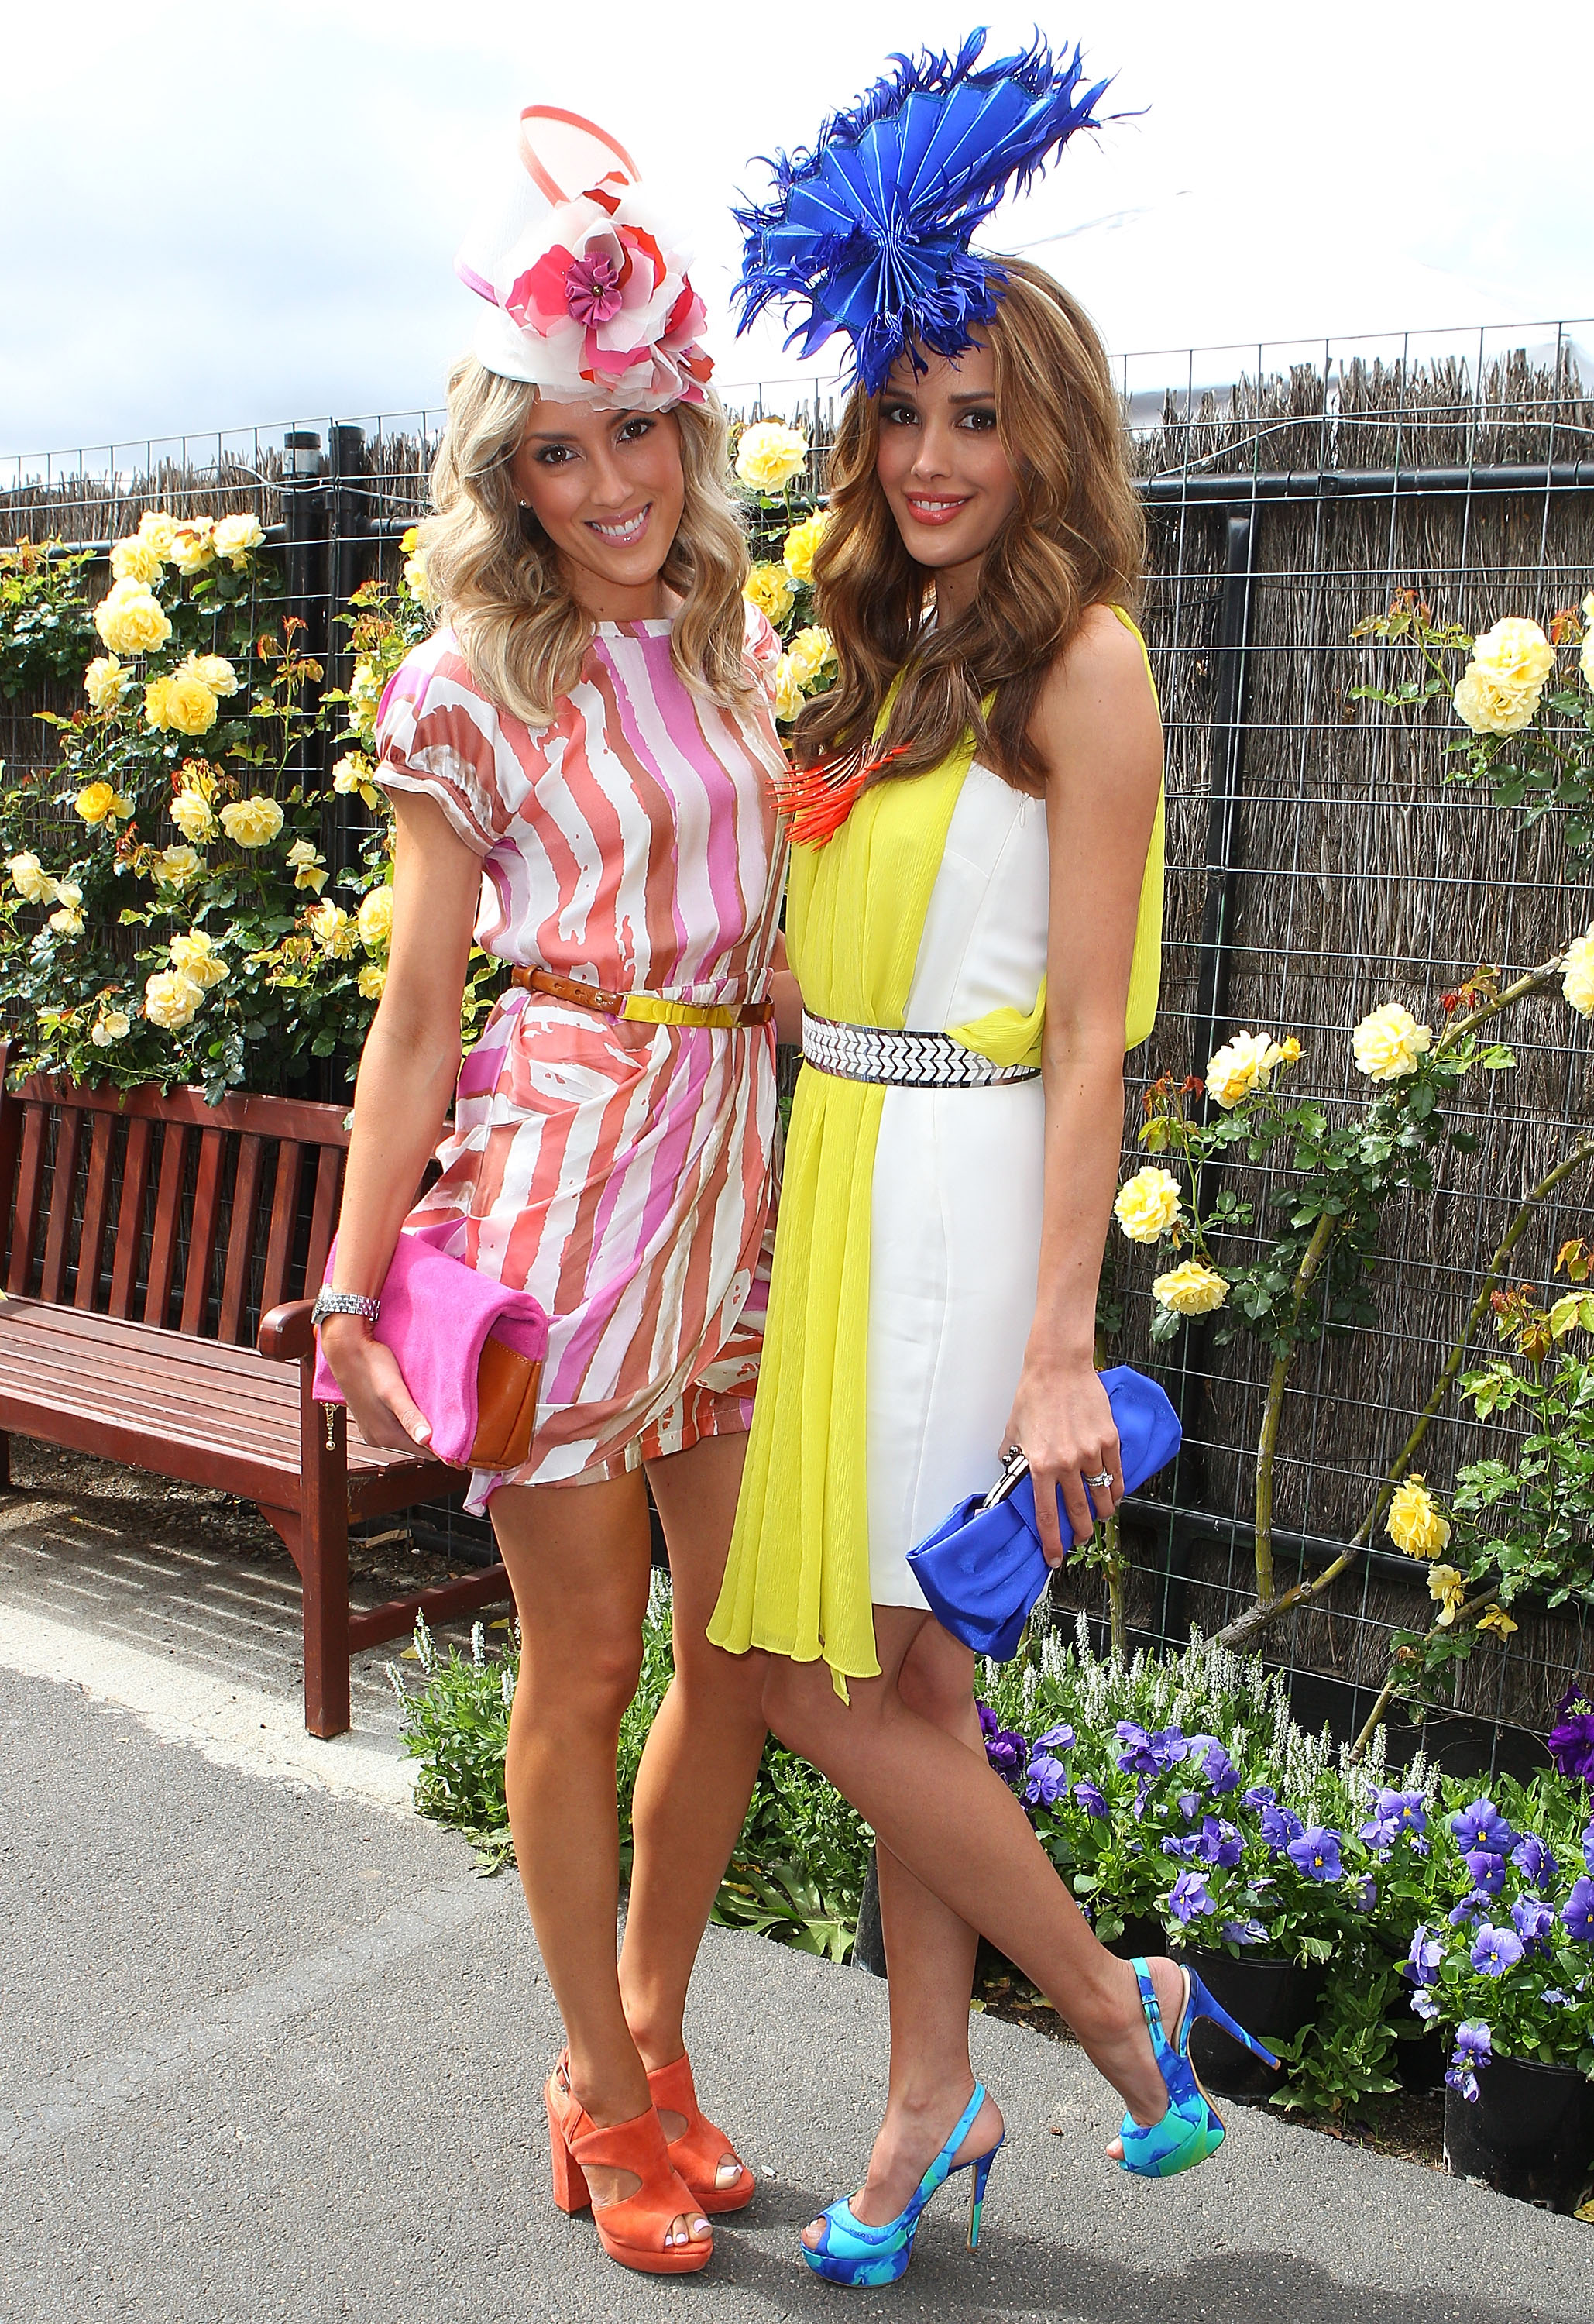 Melbourne Cup Dress Code: What to Wear Guide